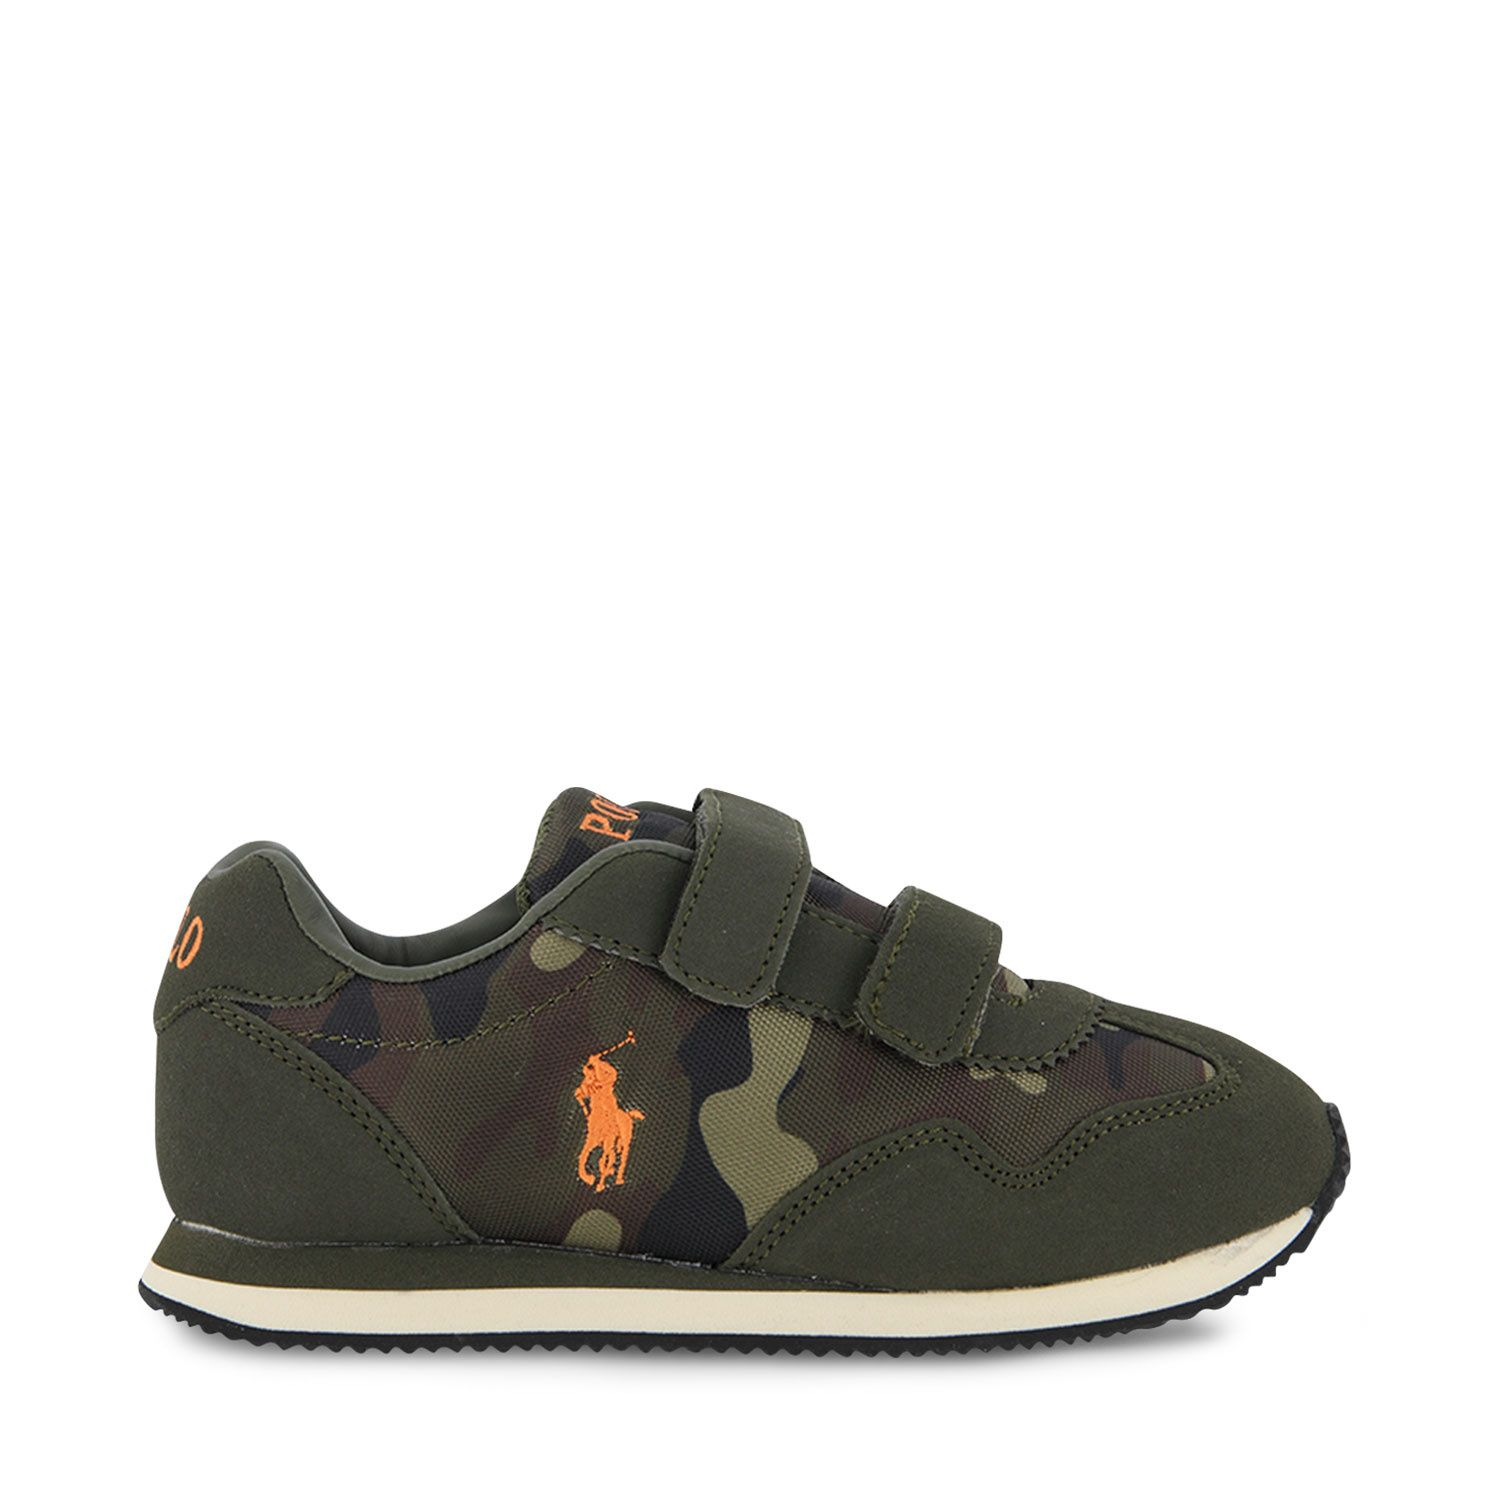 Picture of Ralph Lauren CRESTON EZ kids sneakers army